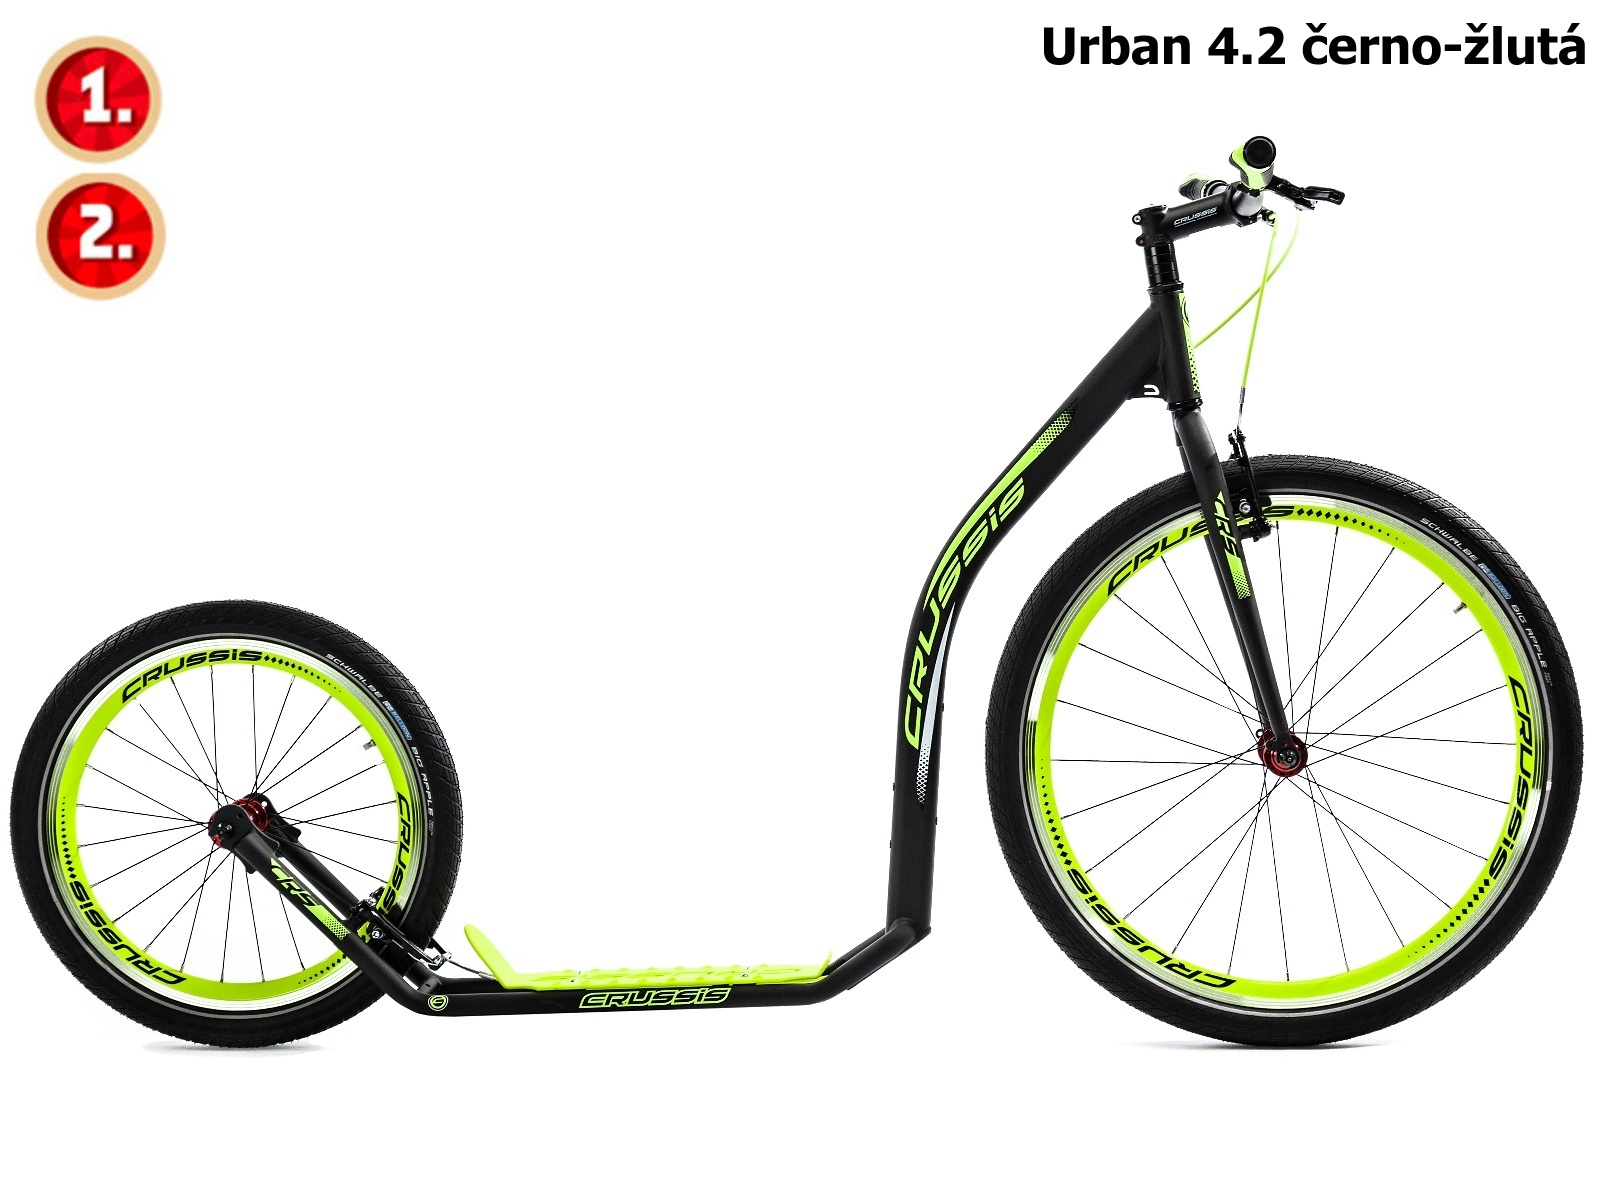 CRUSSIS URBAN 4.2